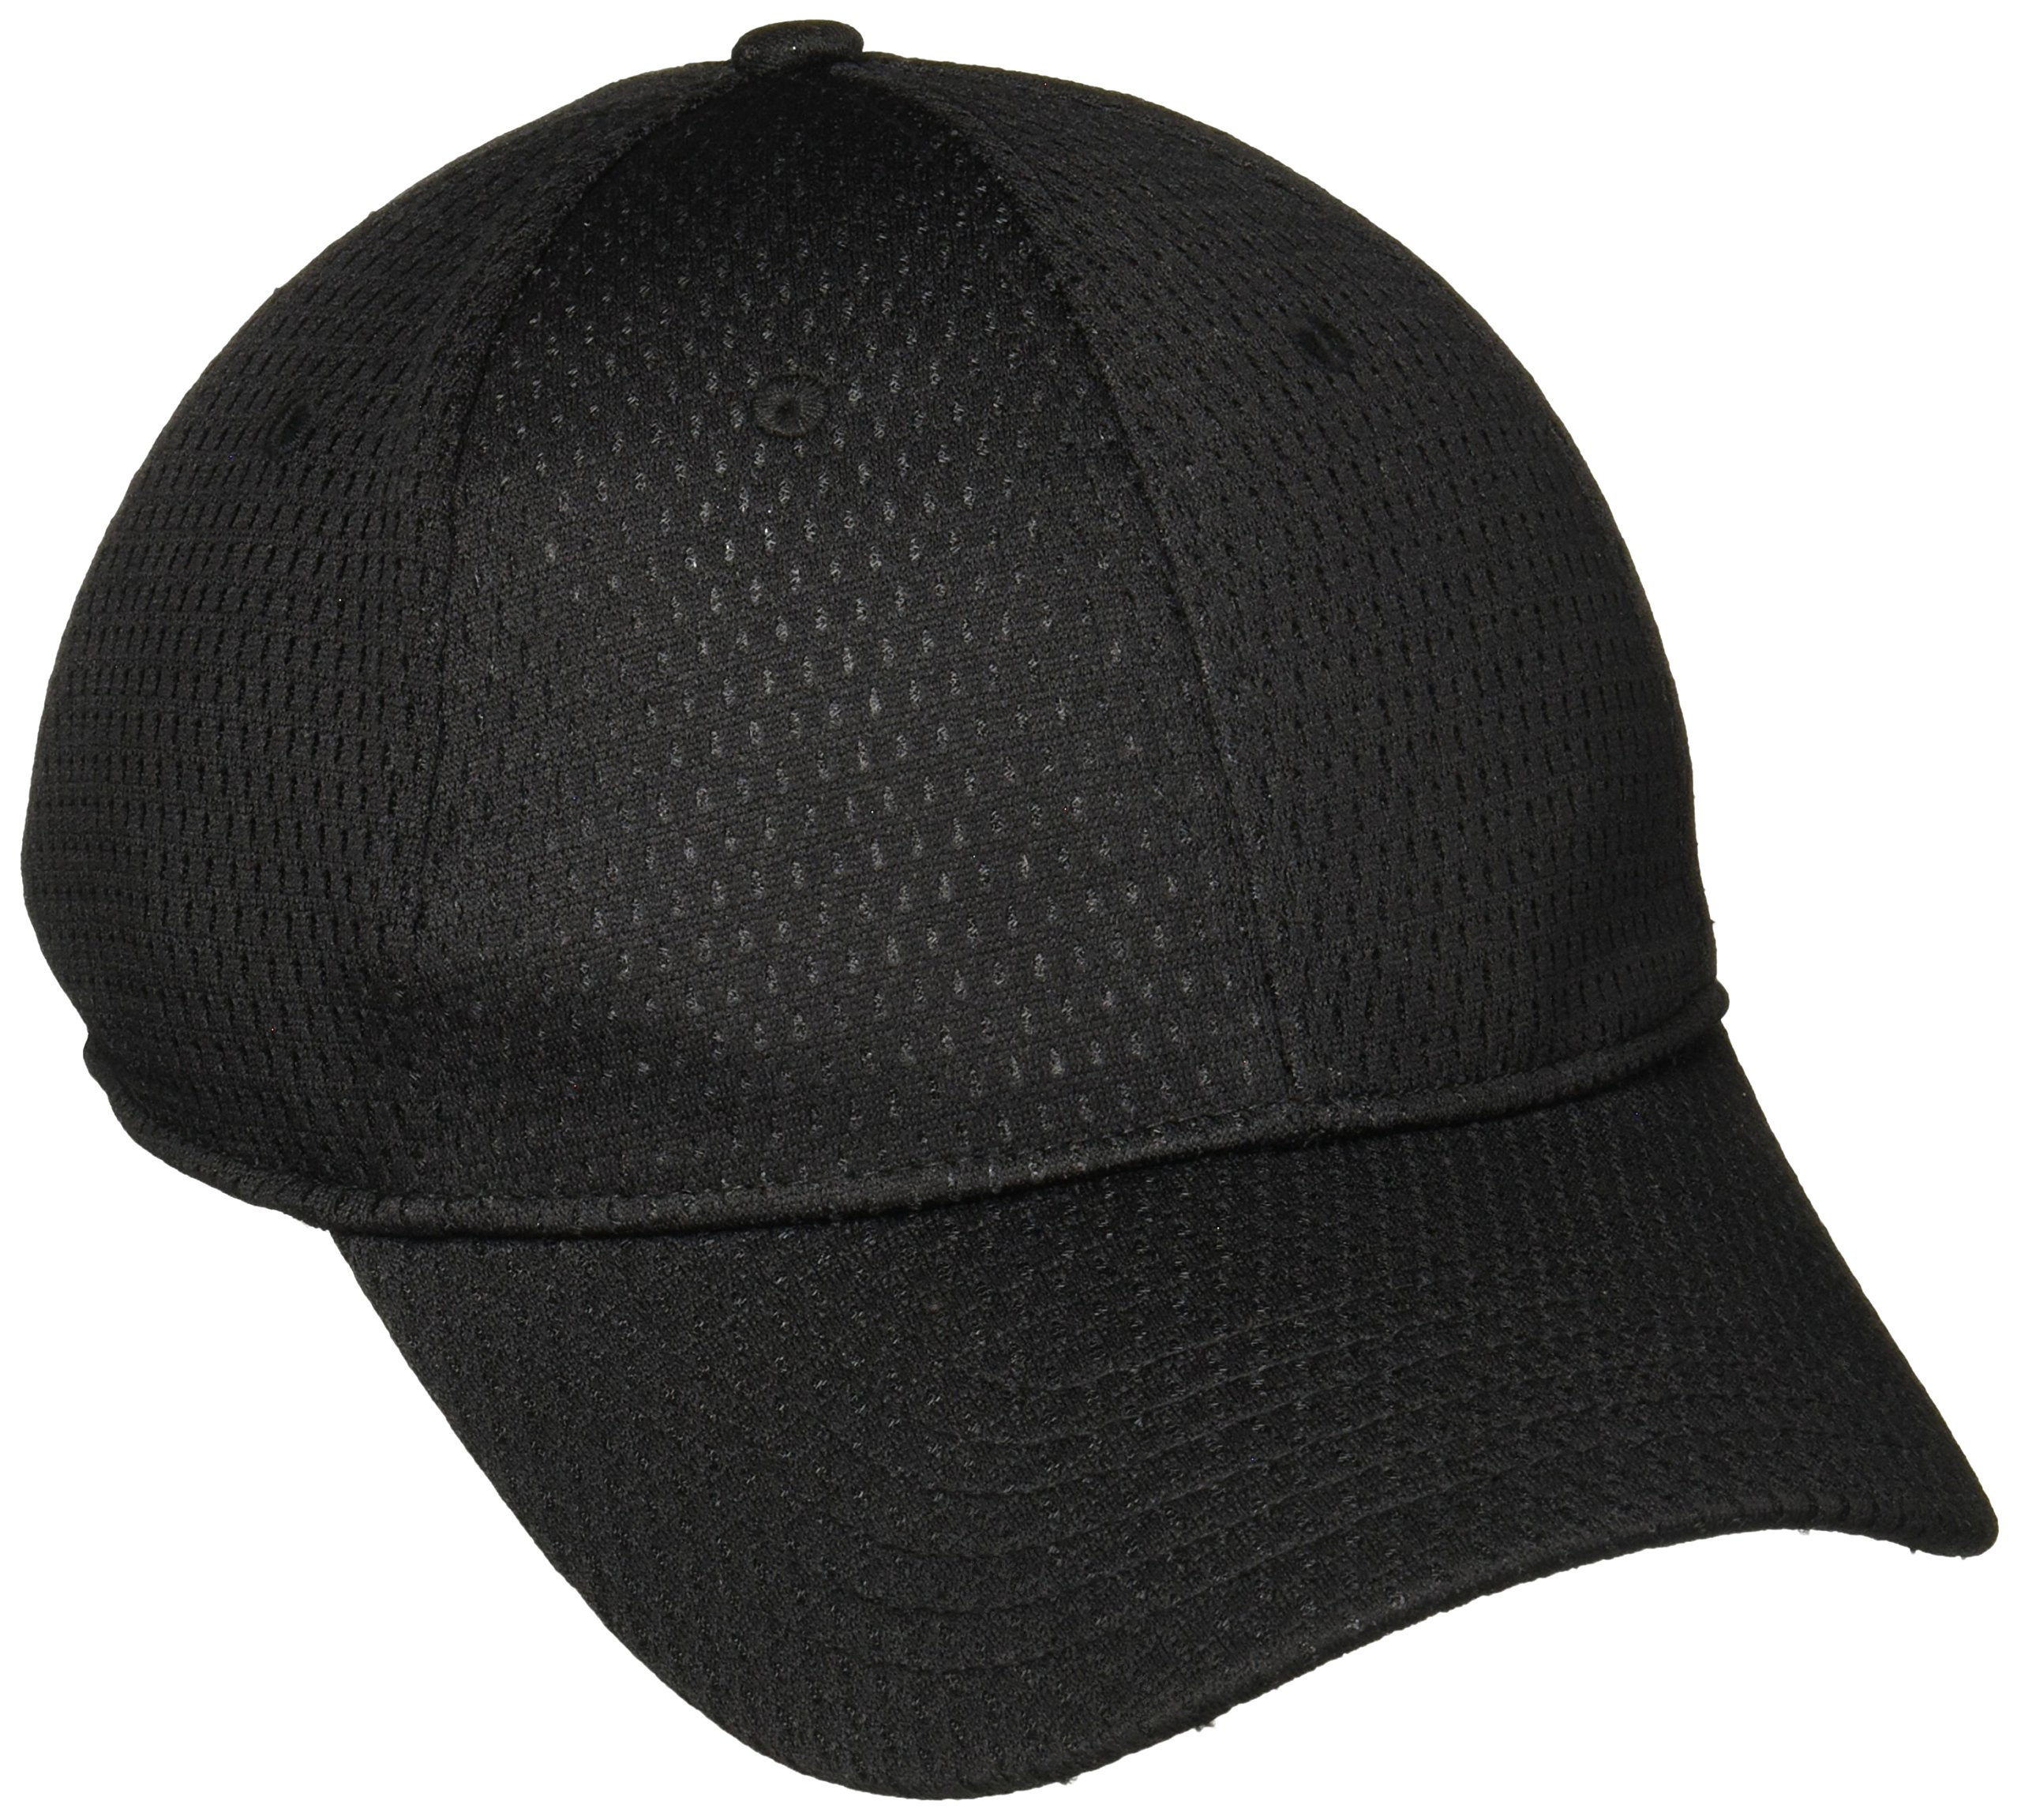 Chef Works Cool Vent Baseball Cap (BCCV) by Chef Works (Image #1)